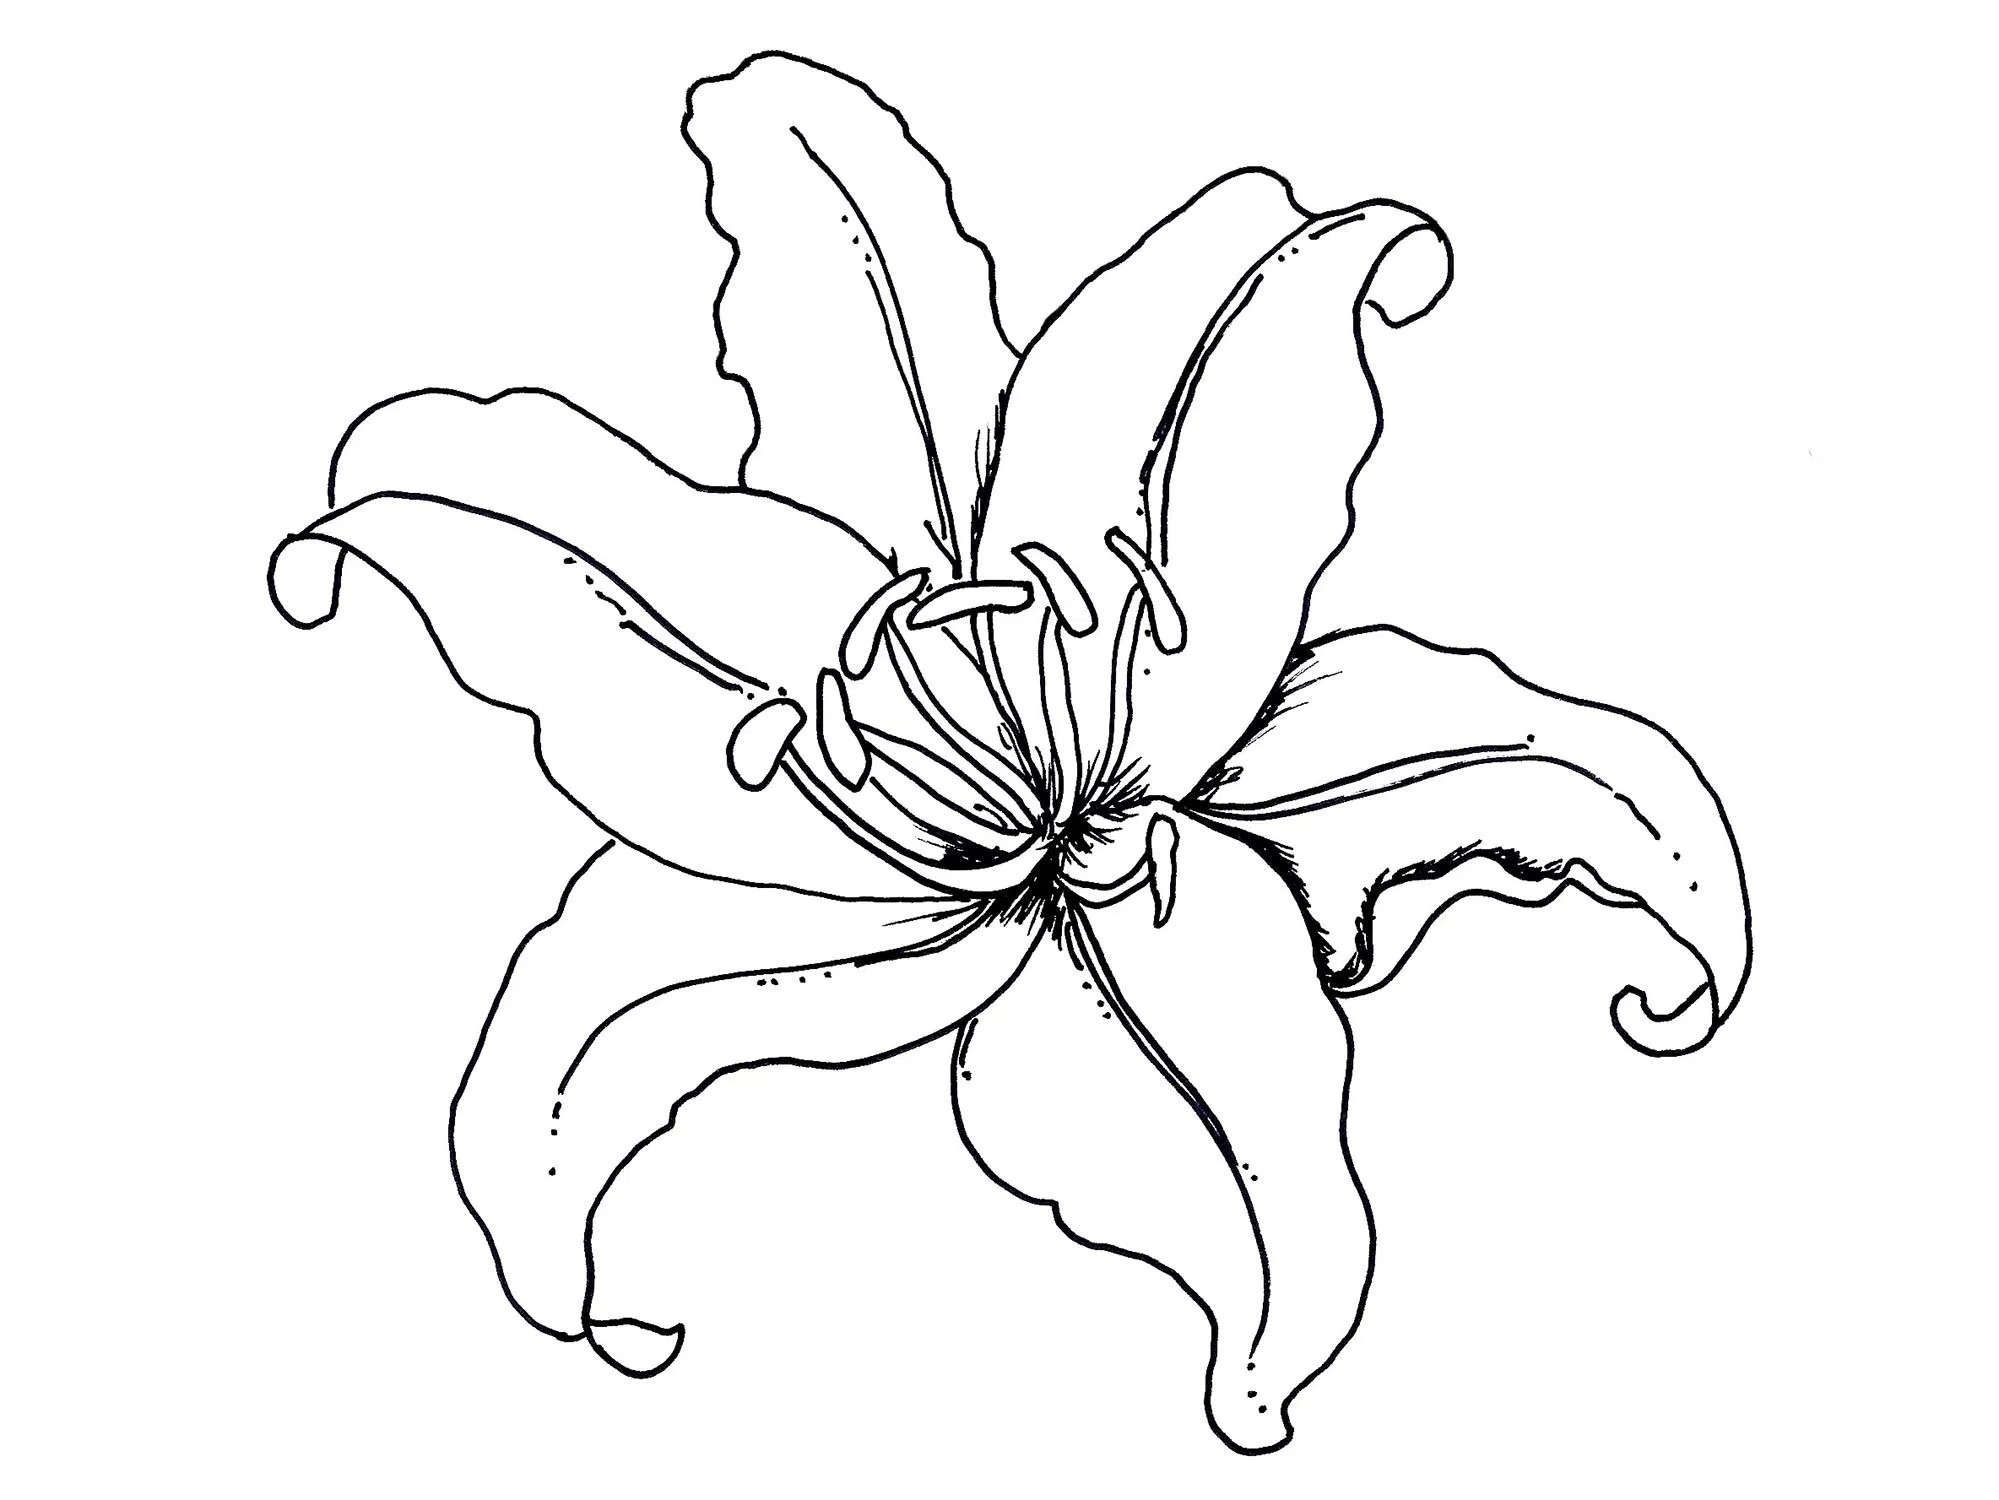 1999x1500 Best Of Iris Flower Coloring Pages Gallery Printable Coloring Sheet